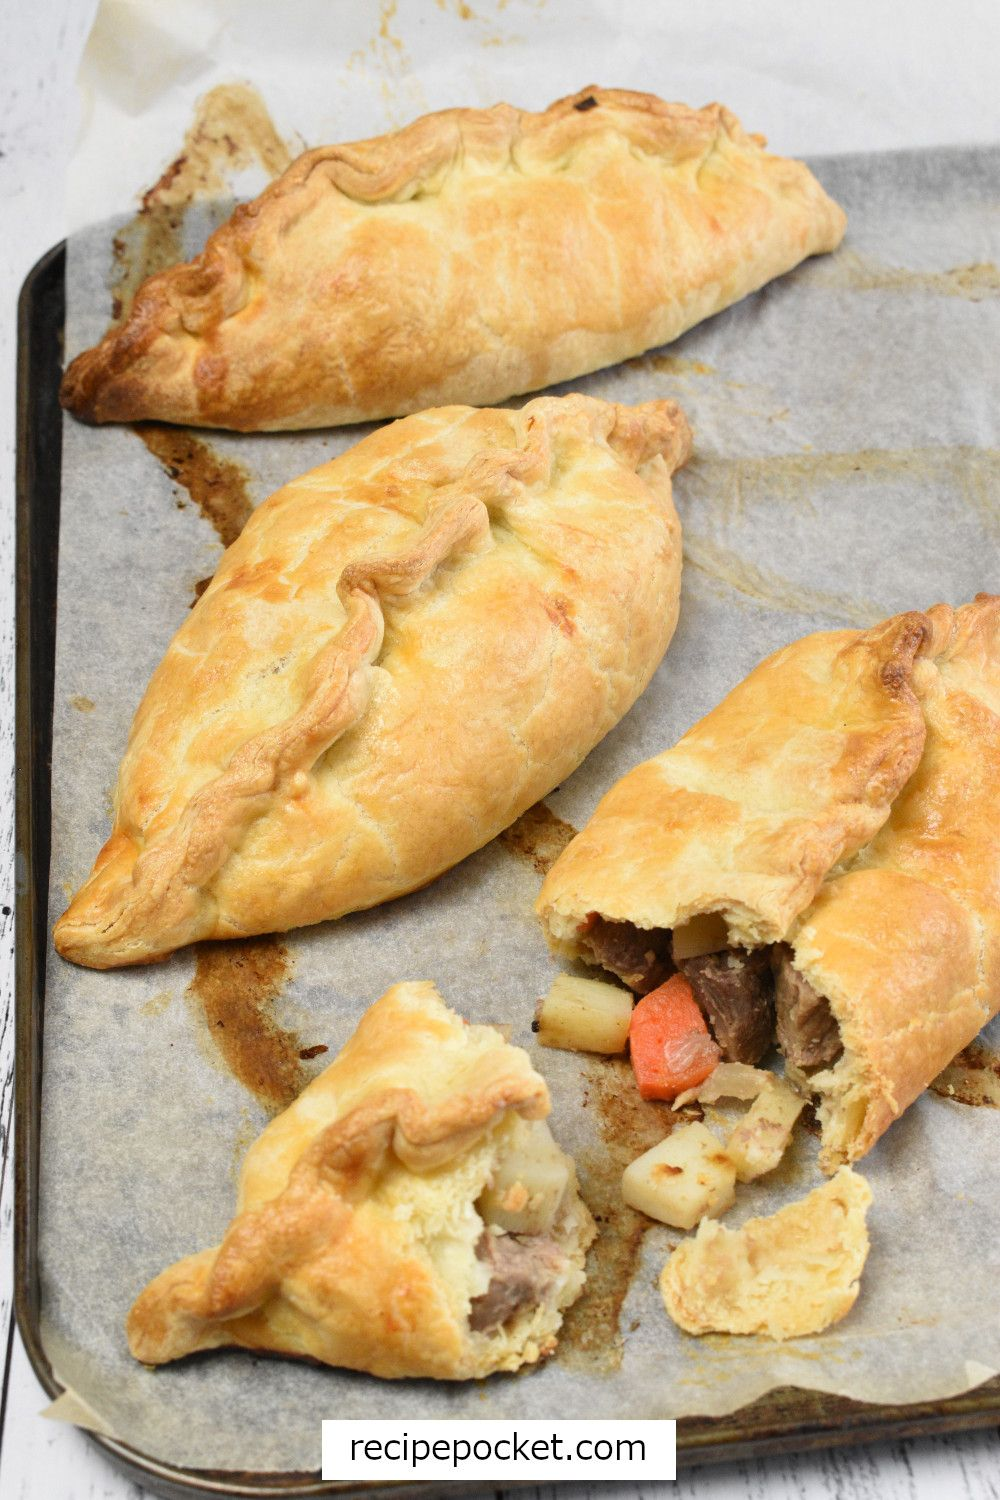 Making Cornish Pasties Doesn T Have To Be Hard Read These Step By Step Instructions For The Best Way To Make Cornish Pasties Recipe In 2020 Pasties Recipes Hand Pies Savory